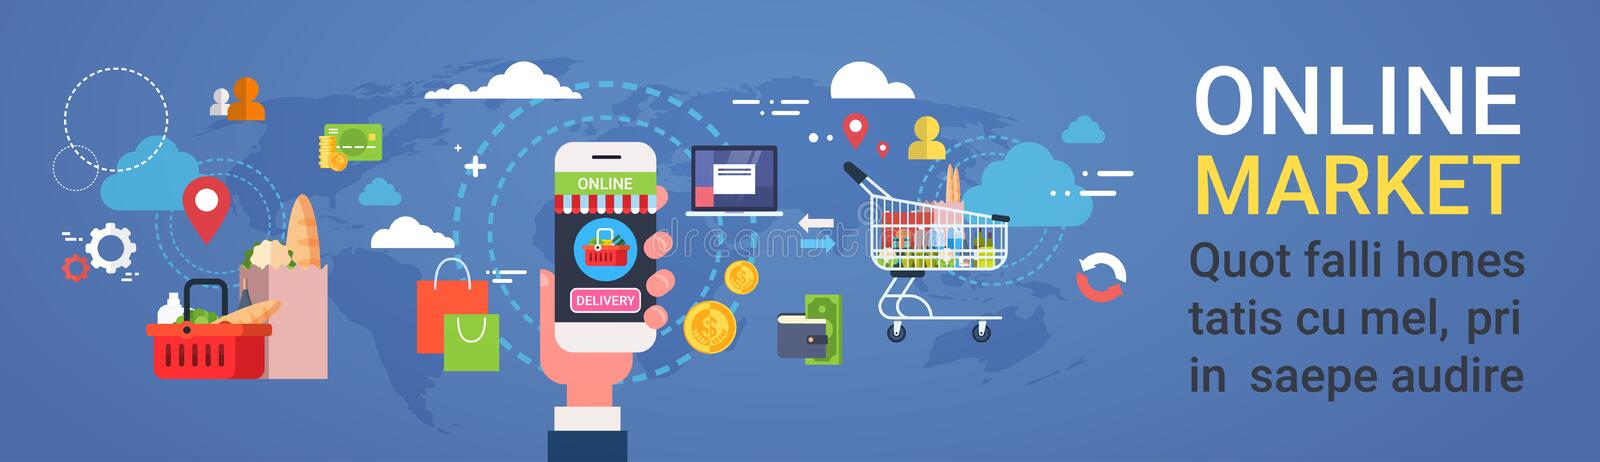 Online Market Hand Holding Smart Phone Ordering Products Grocery Shopping And Food Delivery Concept Horizontal Banner. Flat Vector Illustration stock illustration